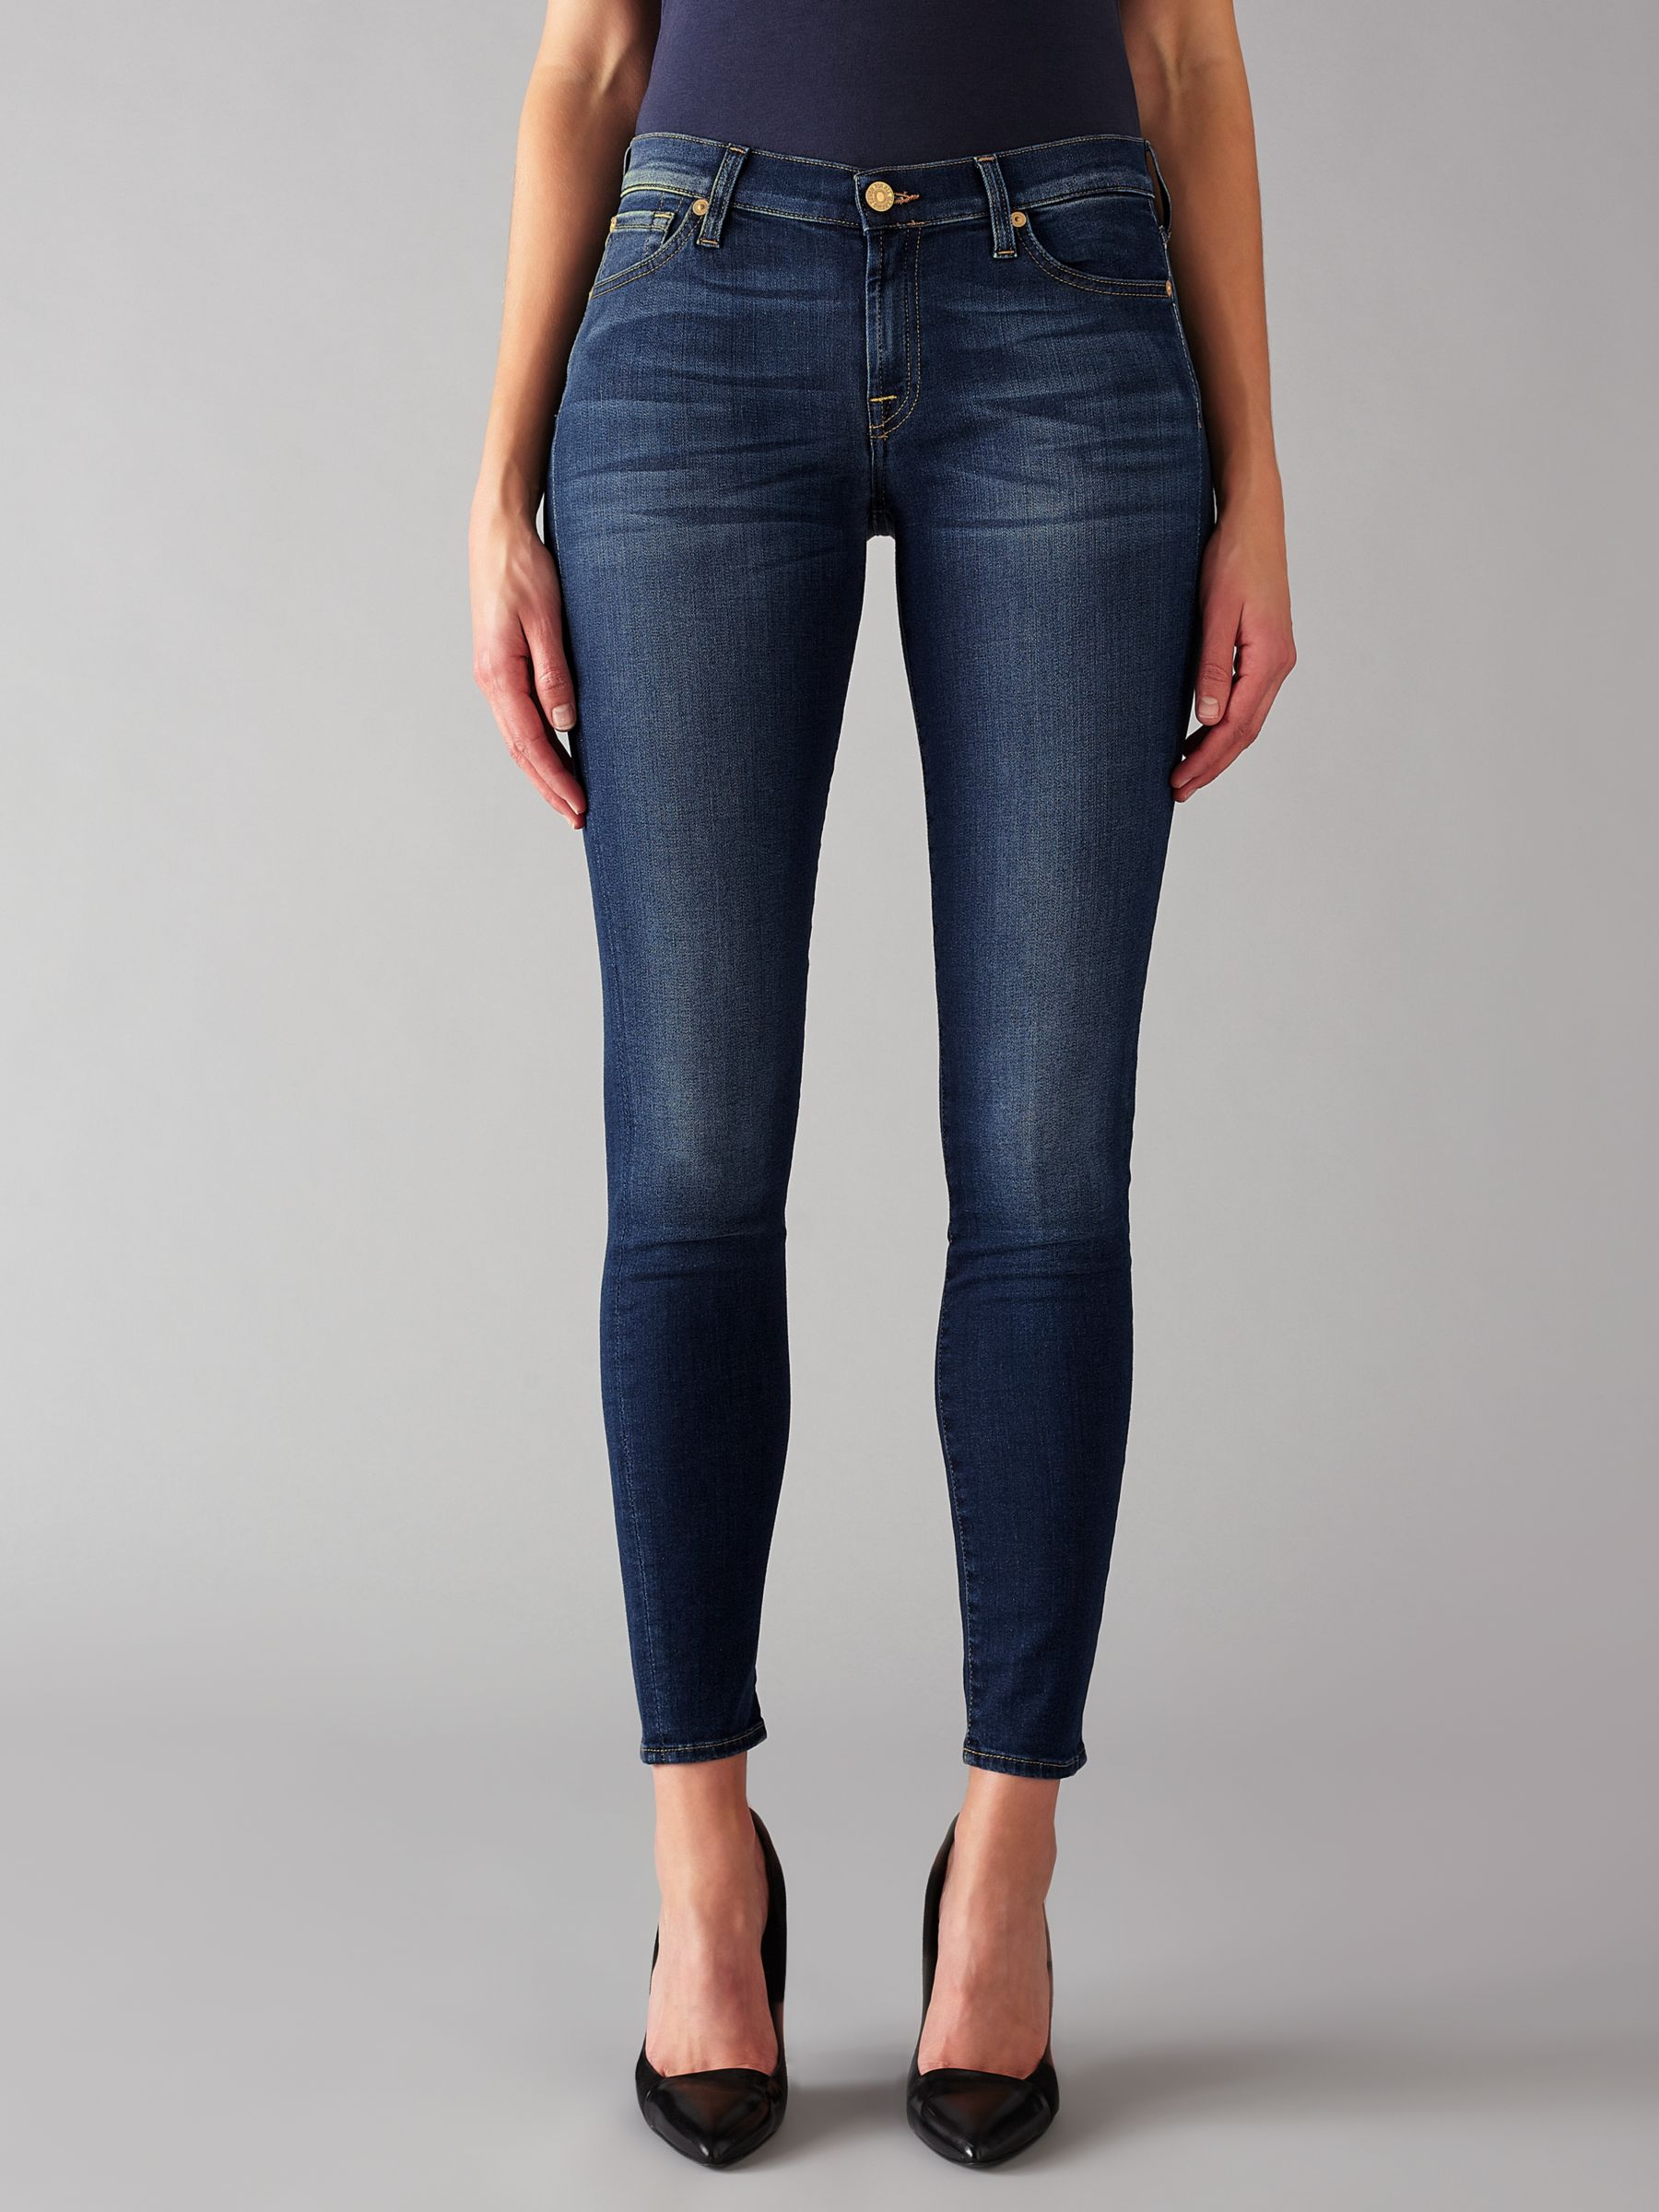 7 For All Mankind 7 For All Mankind The Skinny B(air) Jeans, Duchess